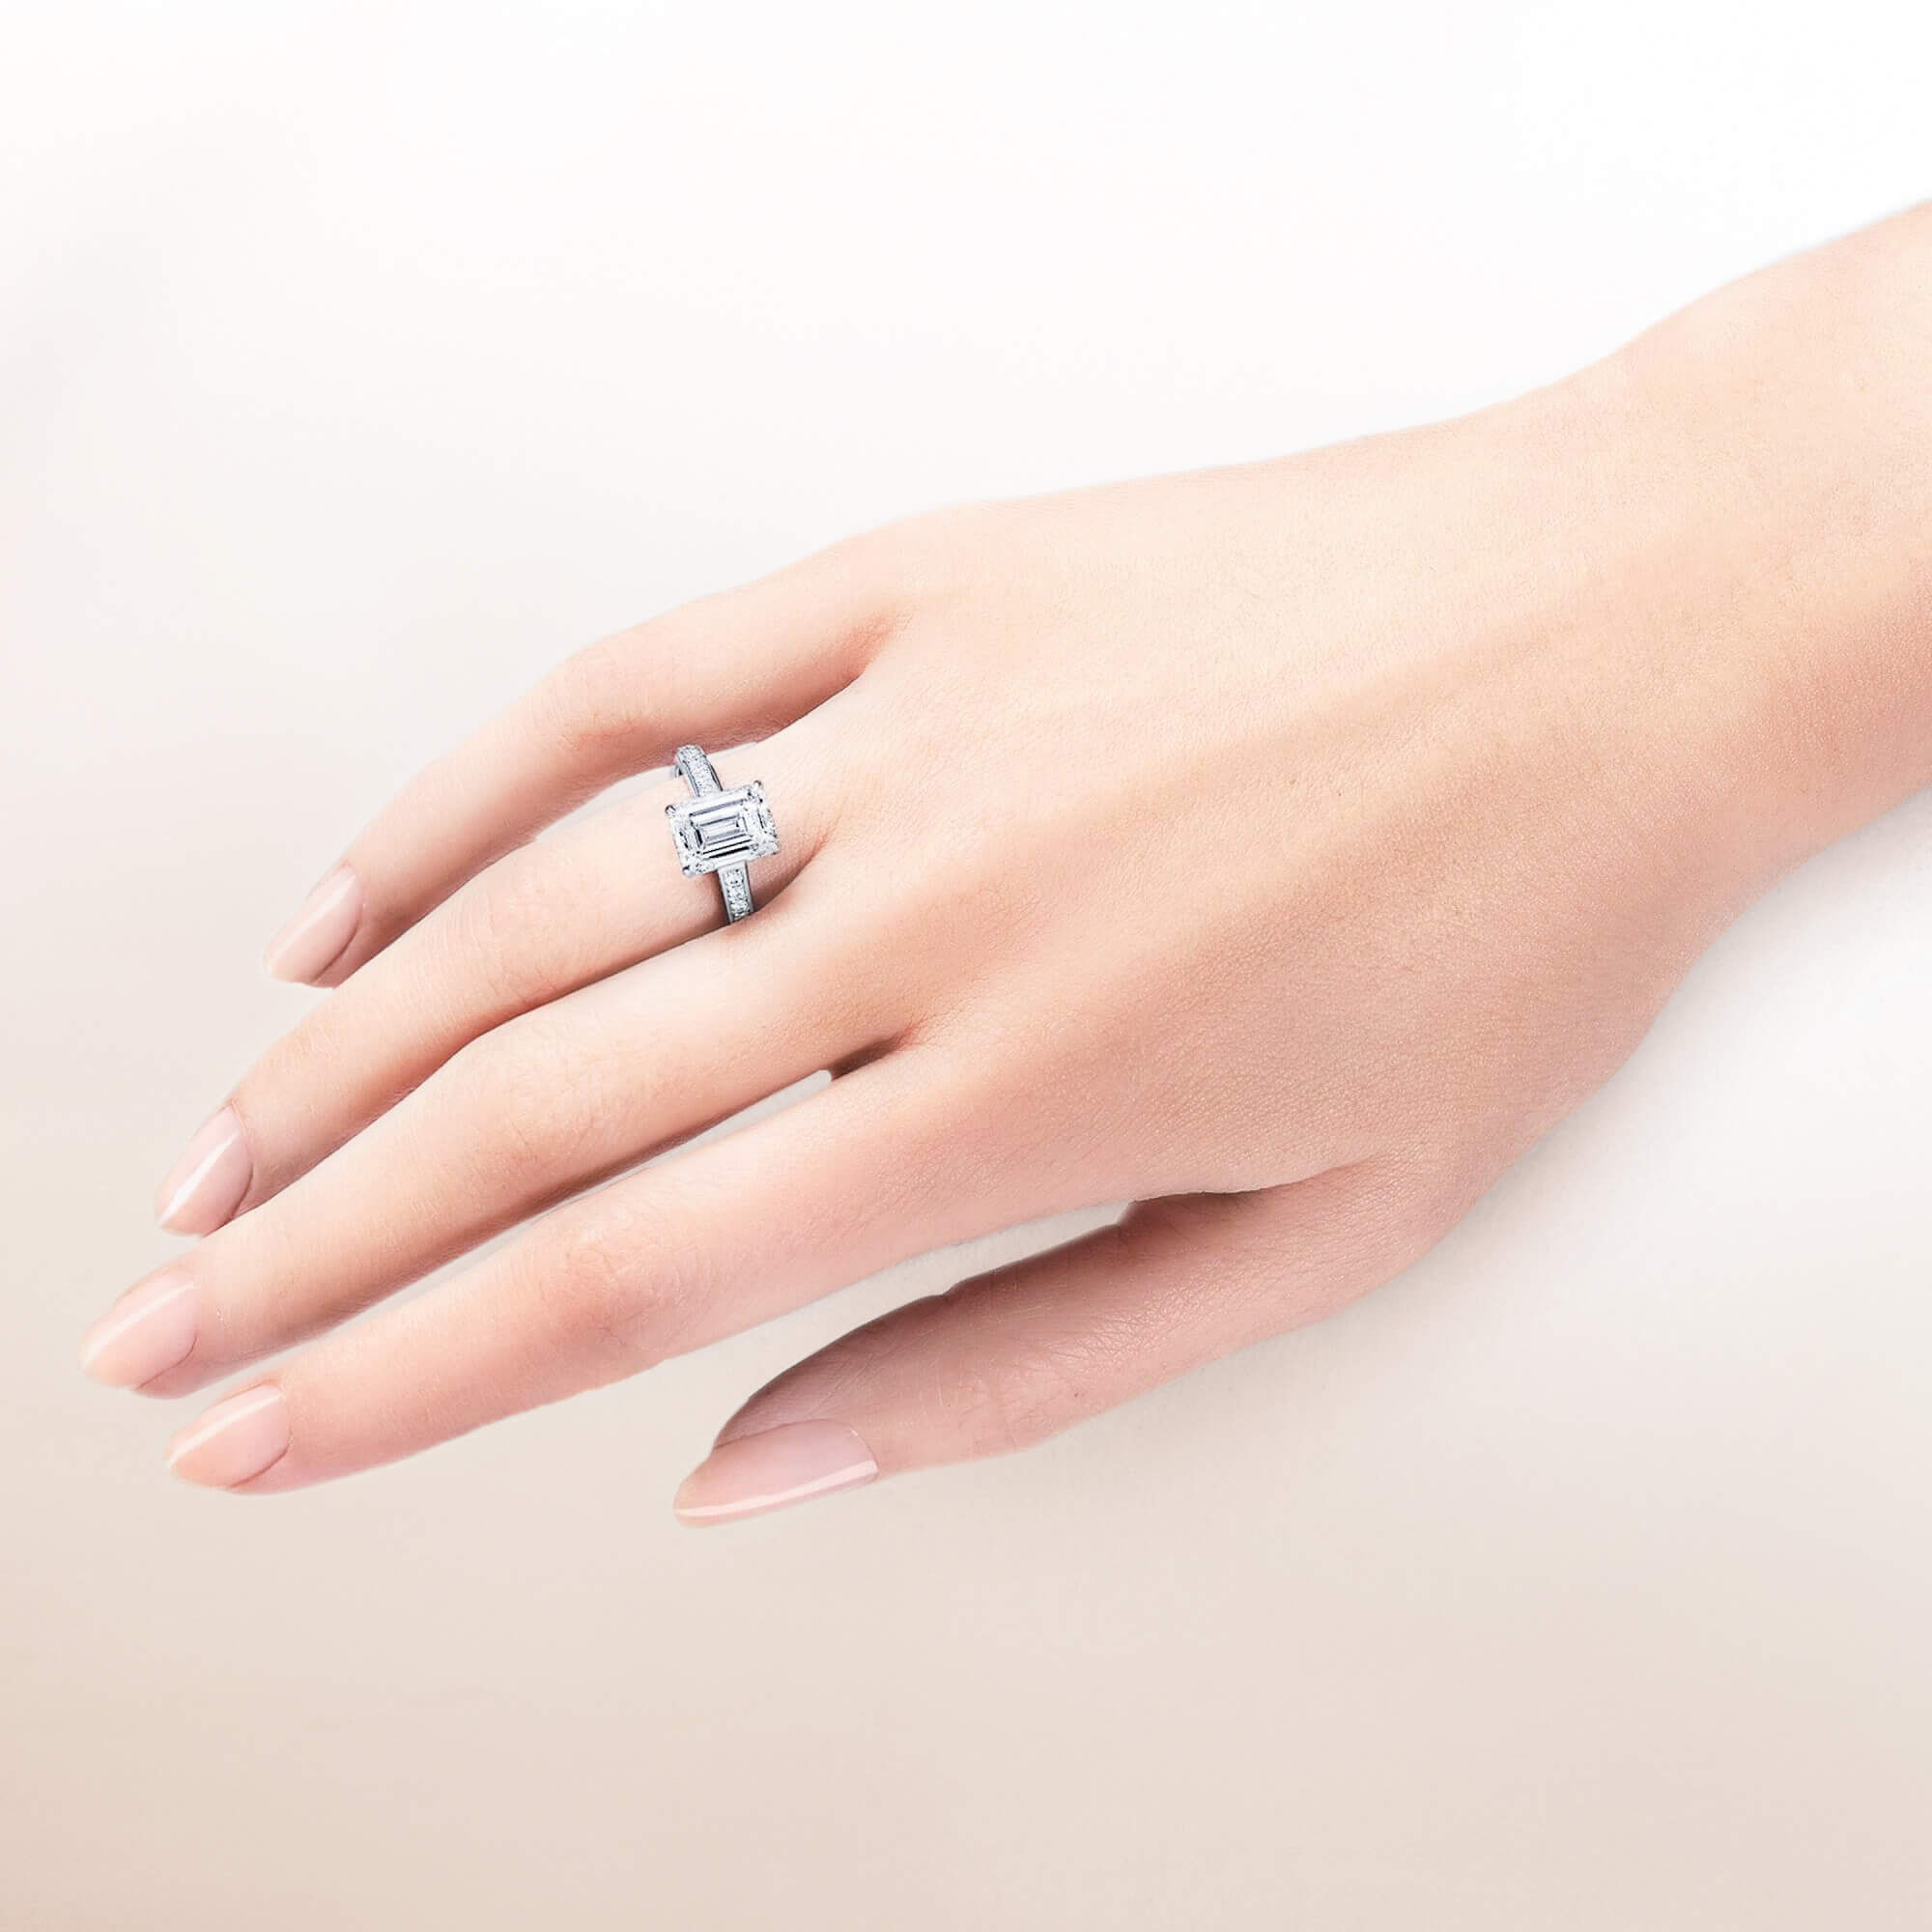 Close up of a models hand wearing a Graff heart shape diamond engagement ring